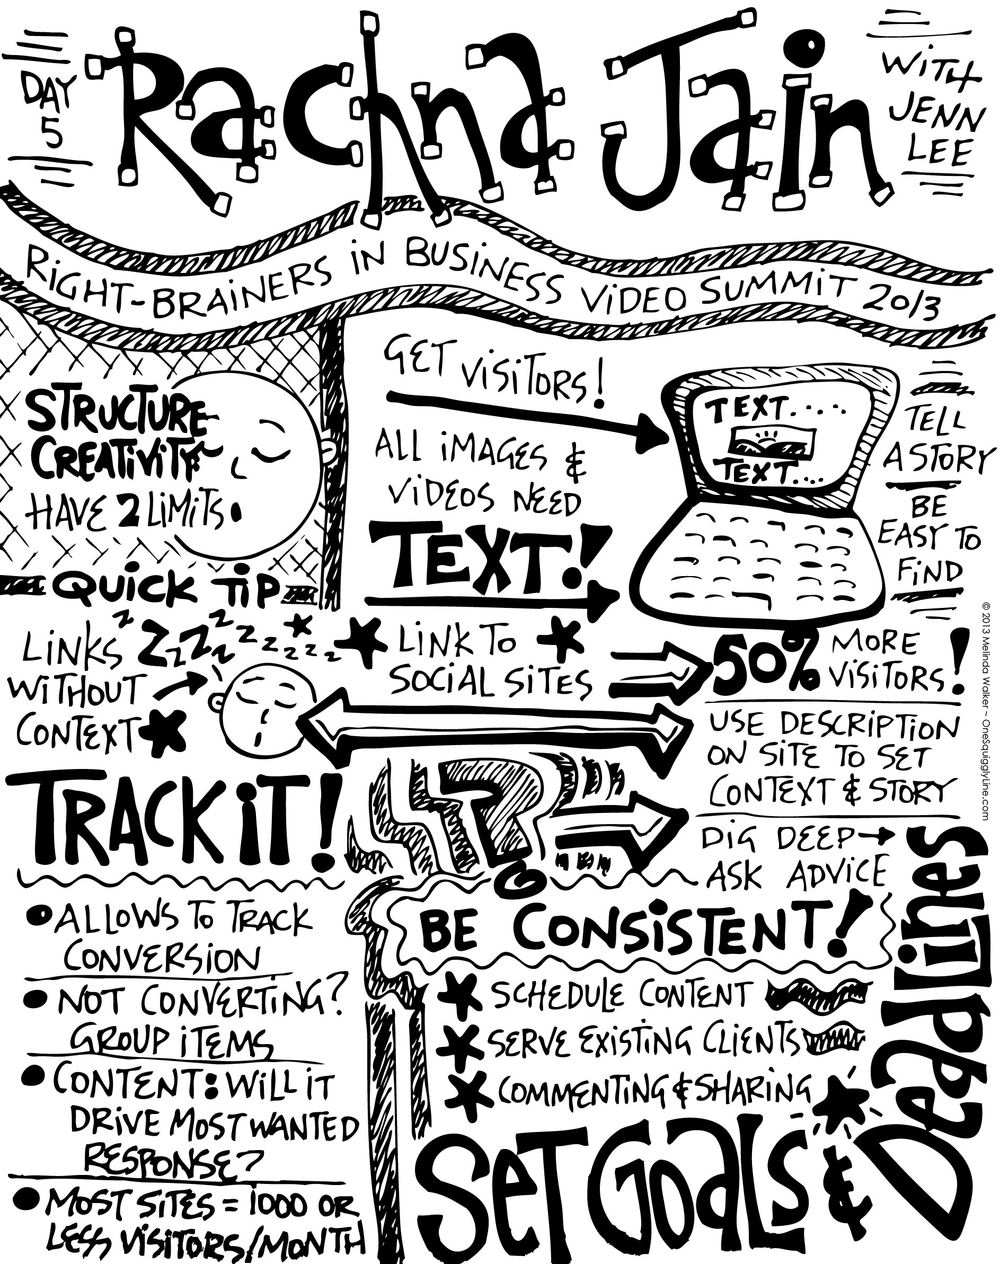 Right-Brainers in Business Sketchnotes